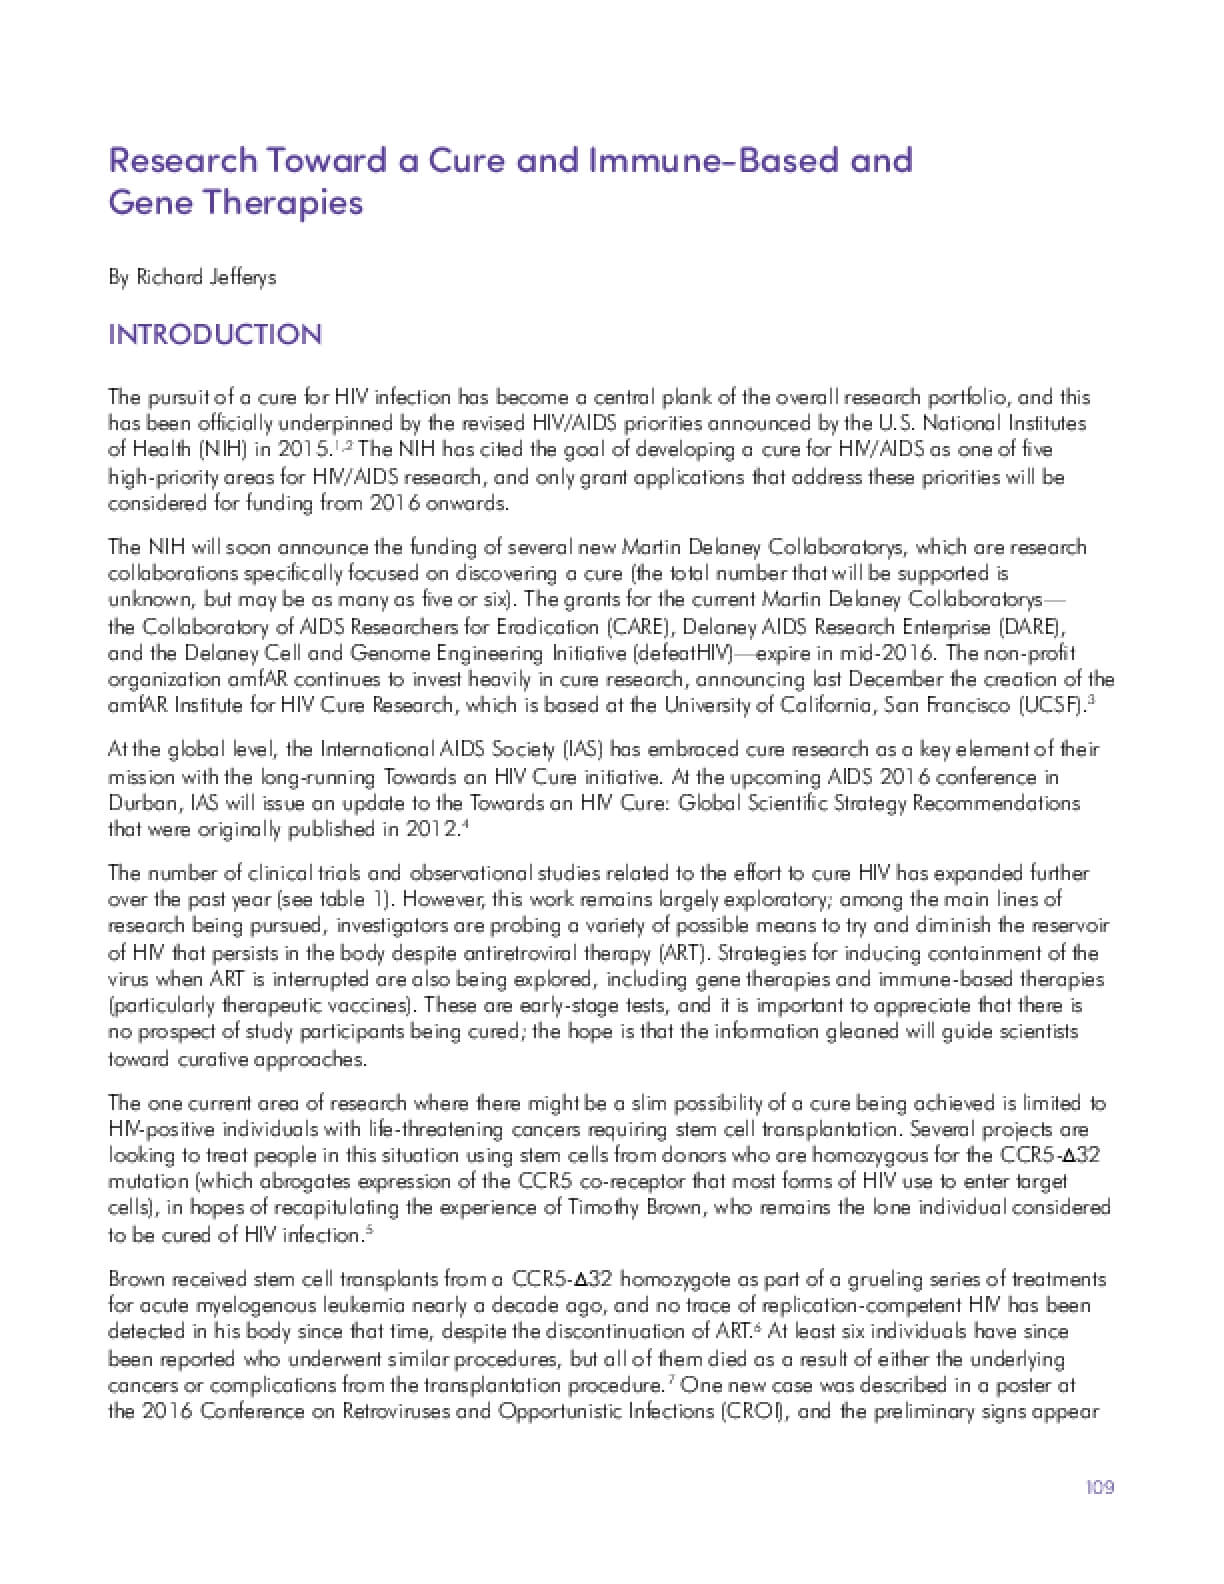 Research Toward a Cure and Immune-Based and Gene Therapies